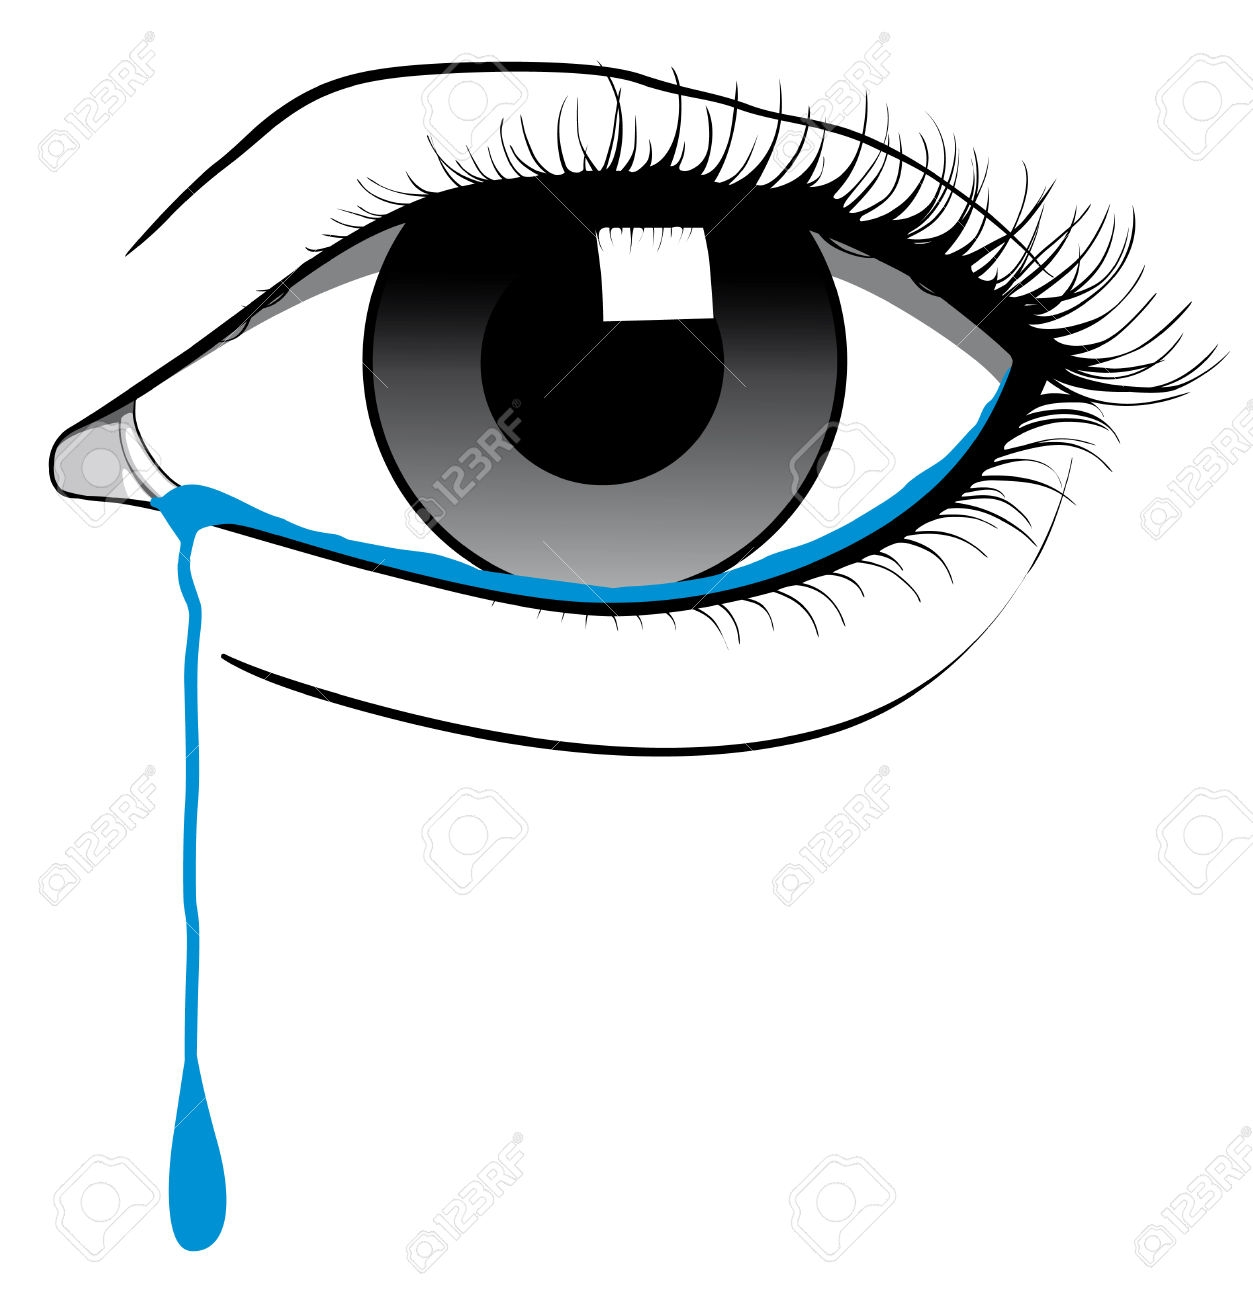 Eye with tears clipart.